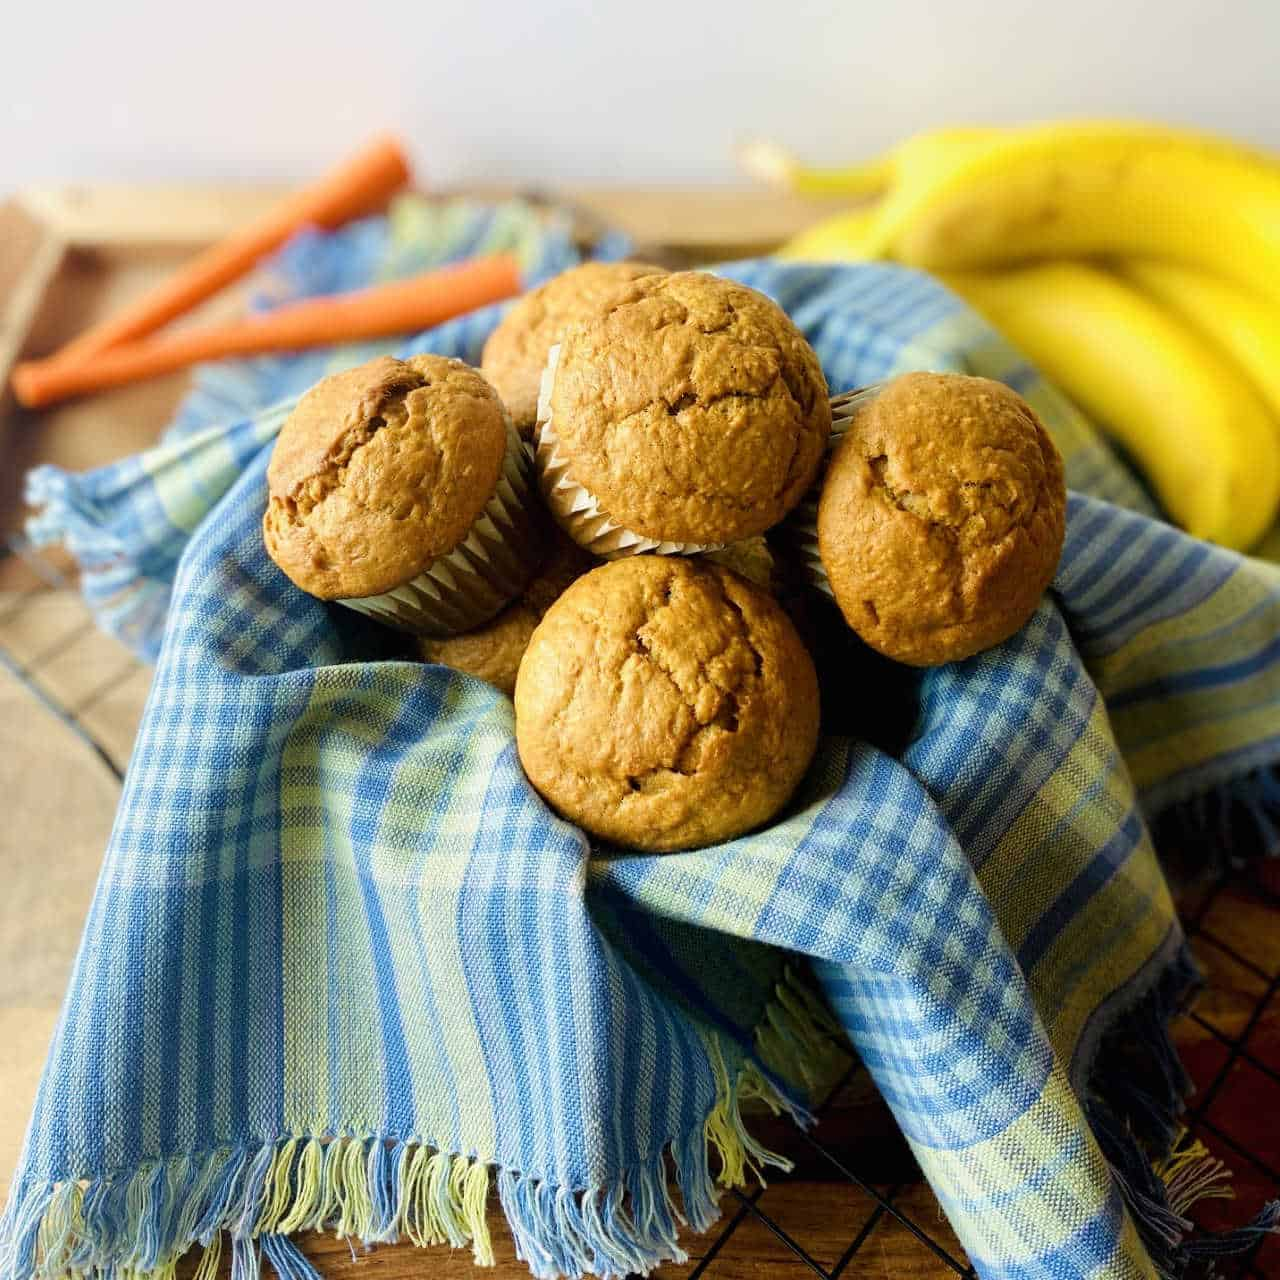 banana carrot muffins in basket with carrot and banana in background 2 1 • Kim Schob